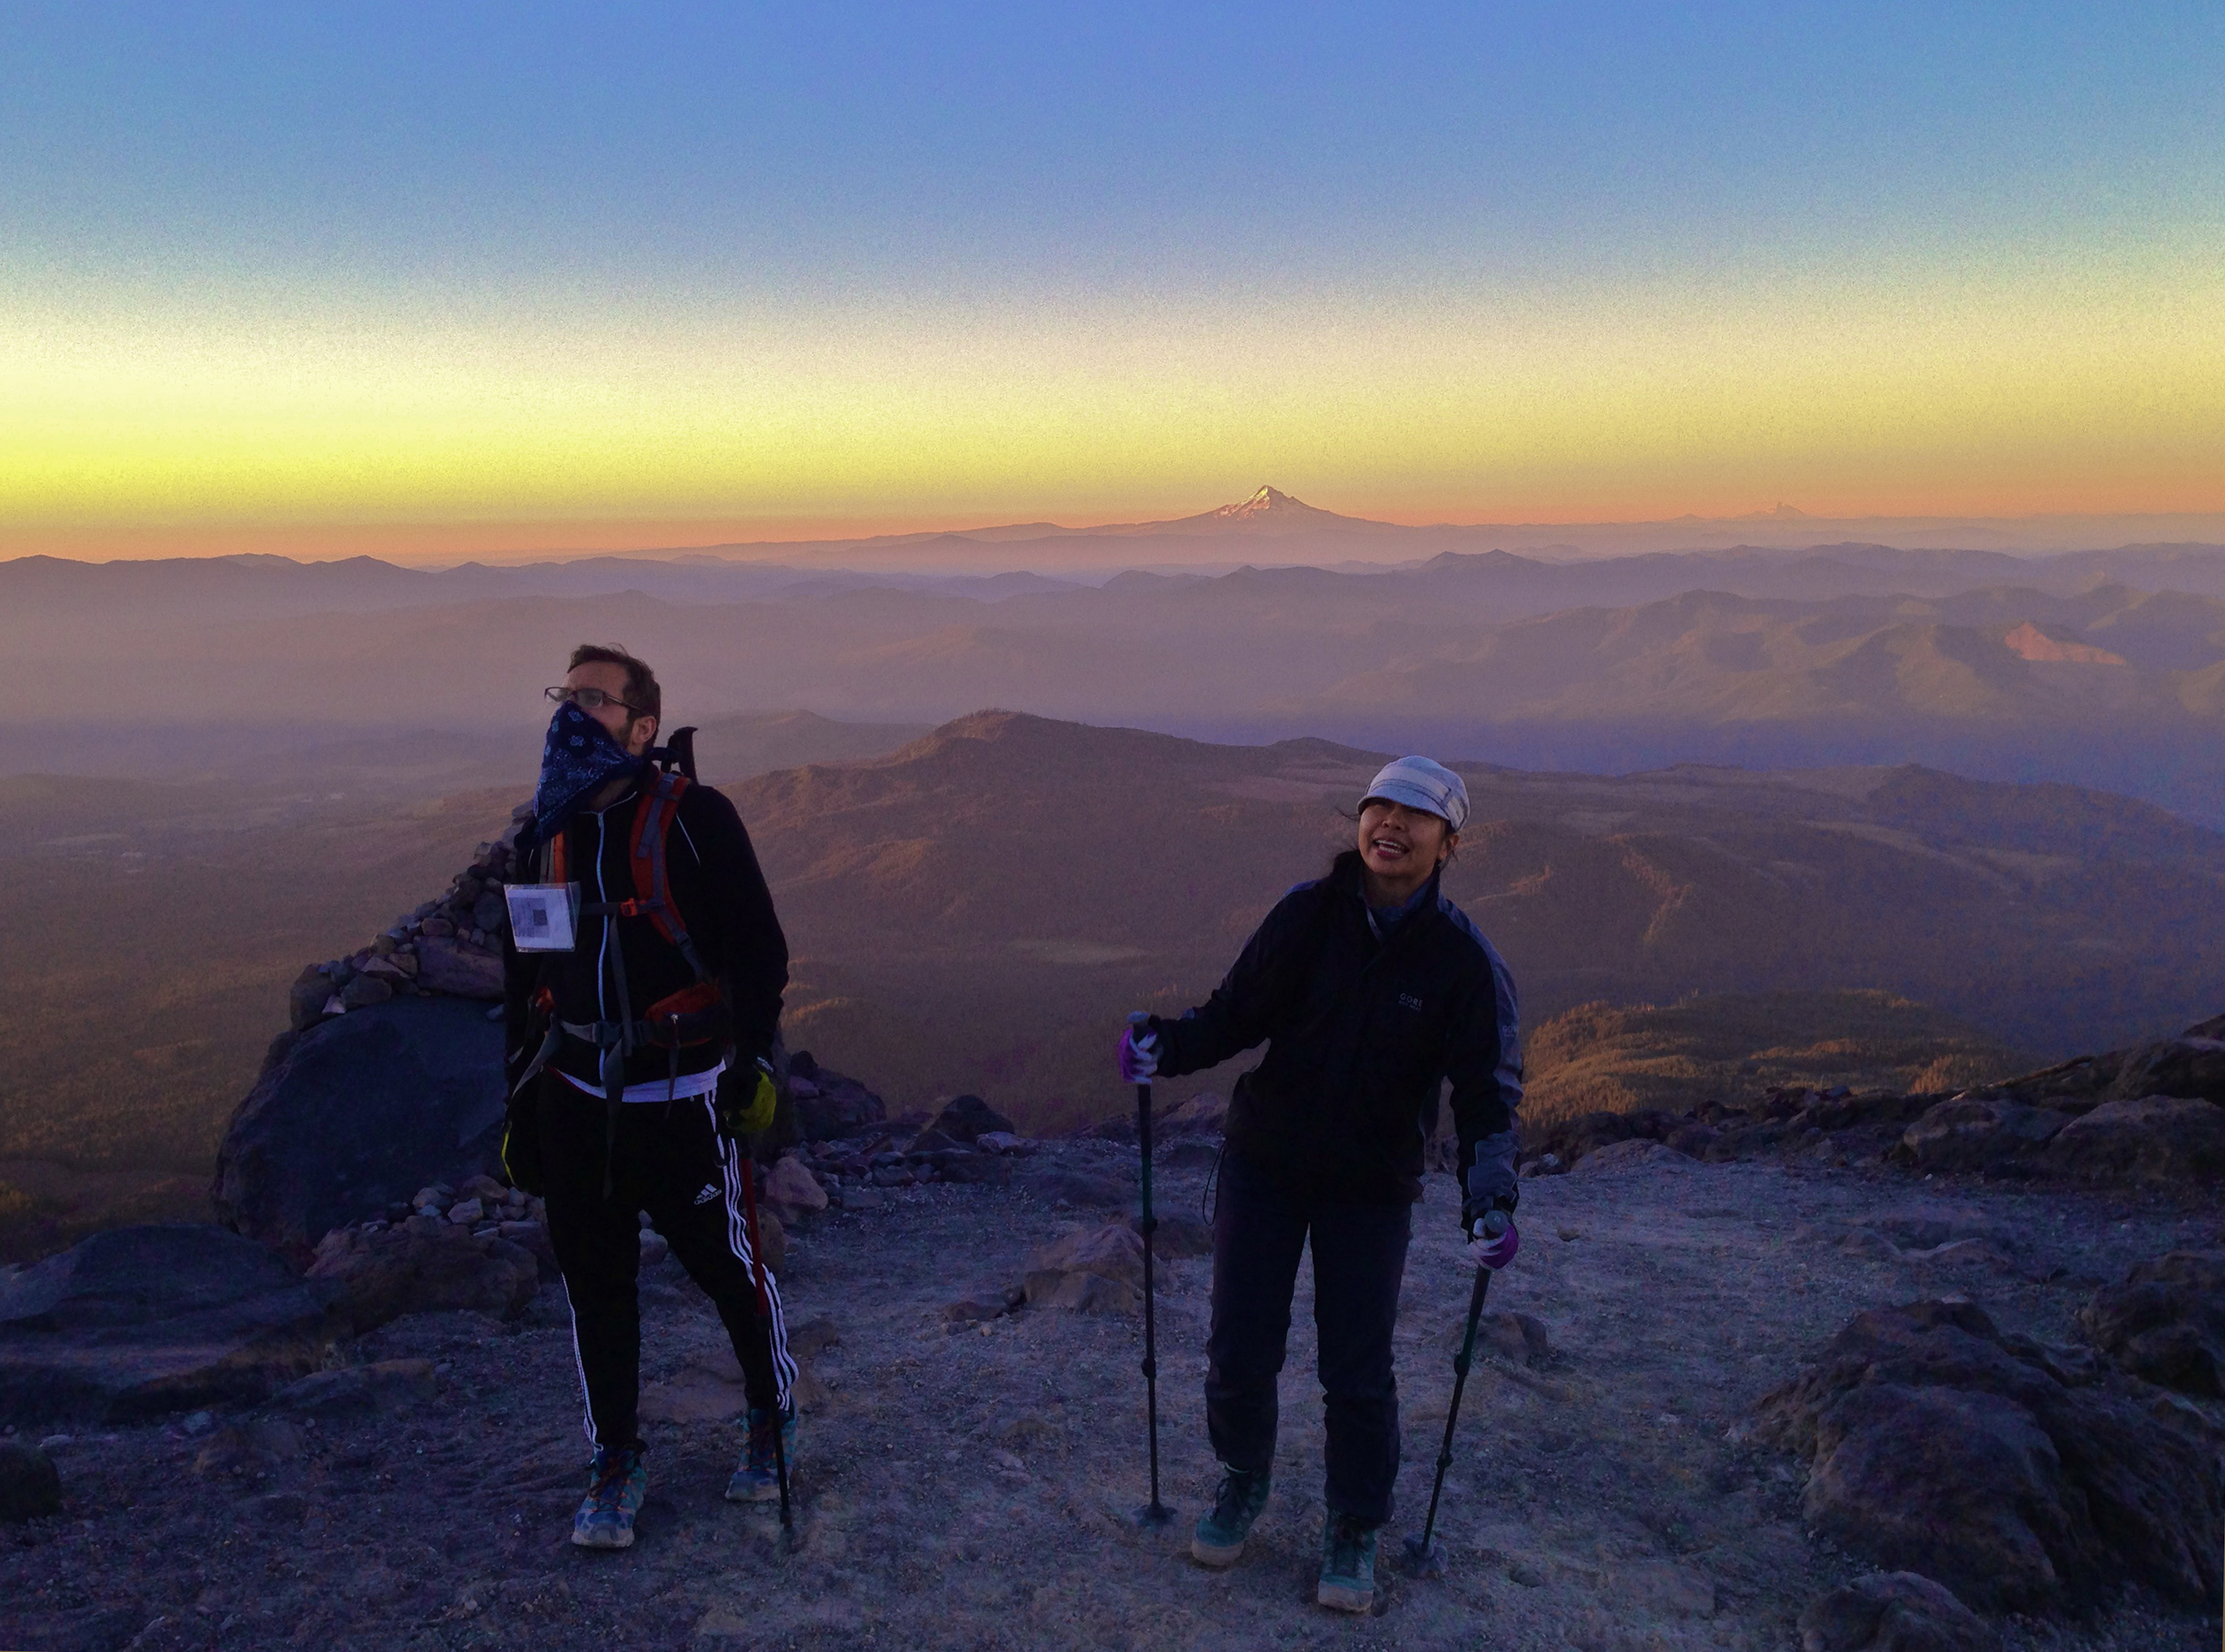 Reaction shots: Sunrise reveals the summit.